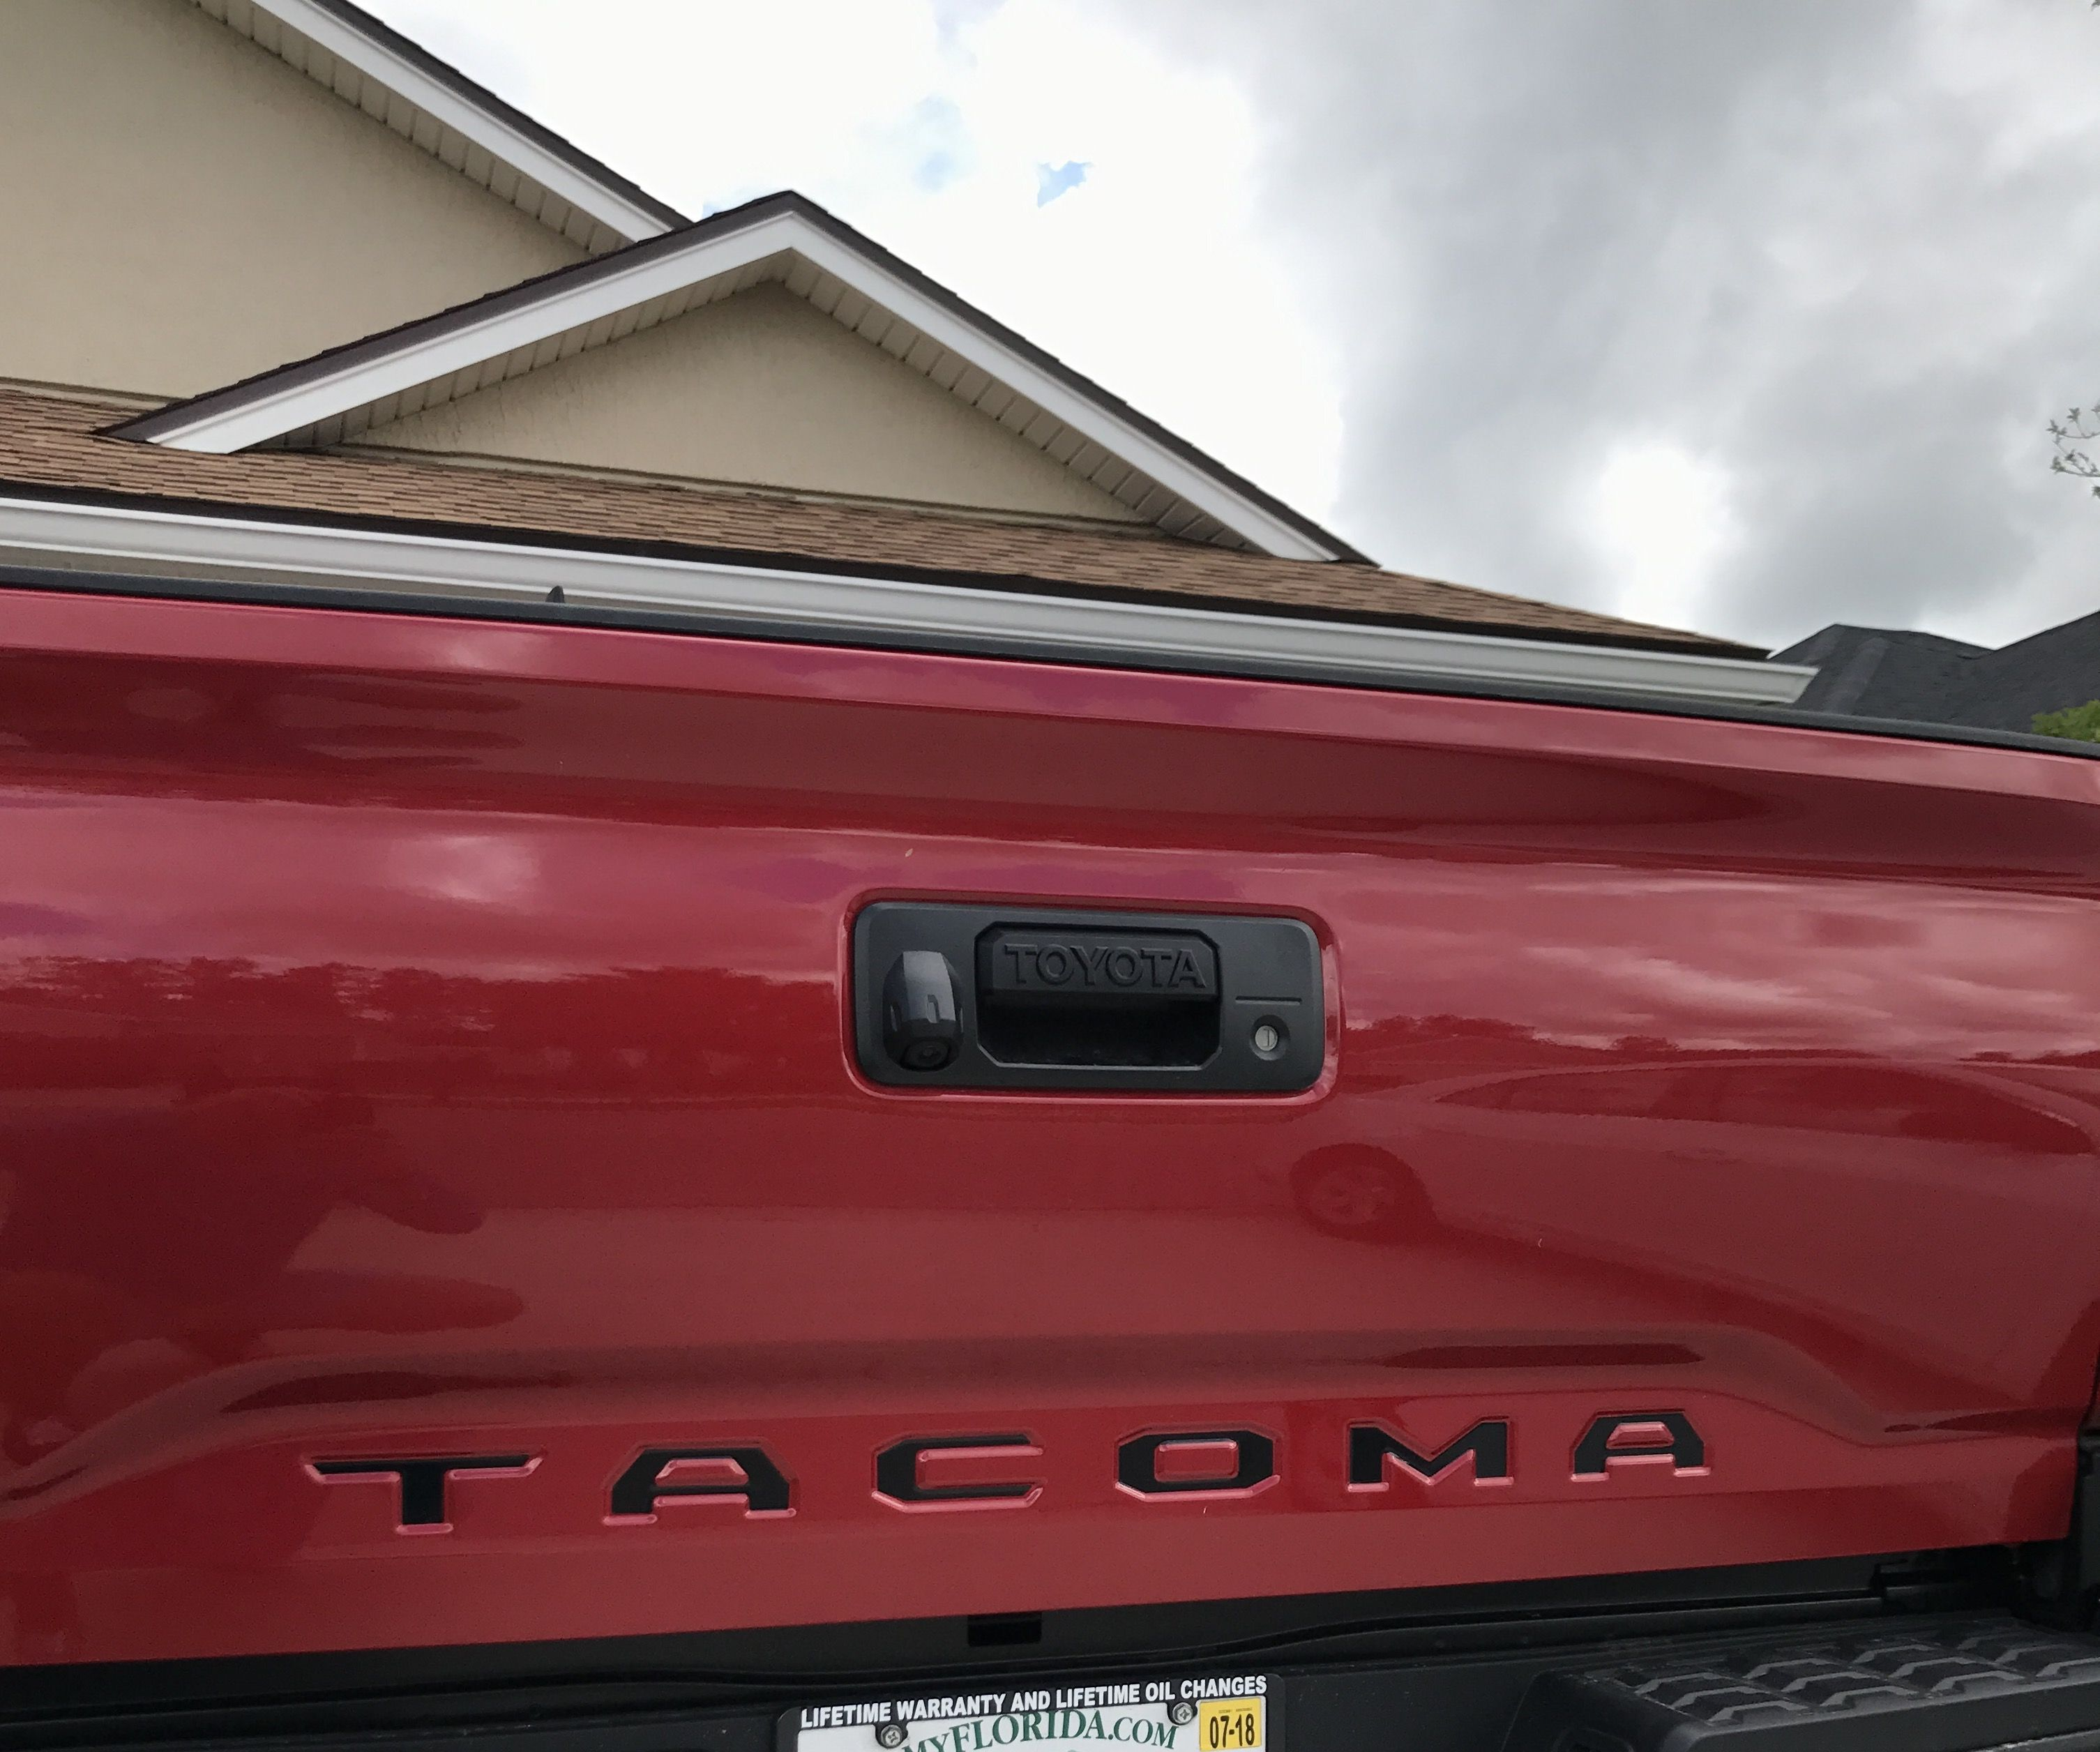 900d50d61ed038ee22e7e6c4a79472da Great Description About Tacoma Tailgate